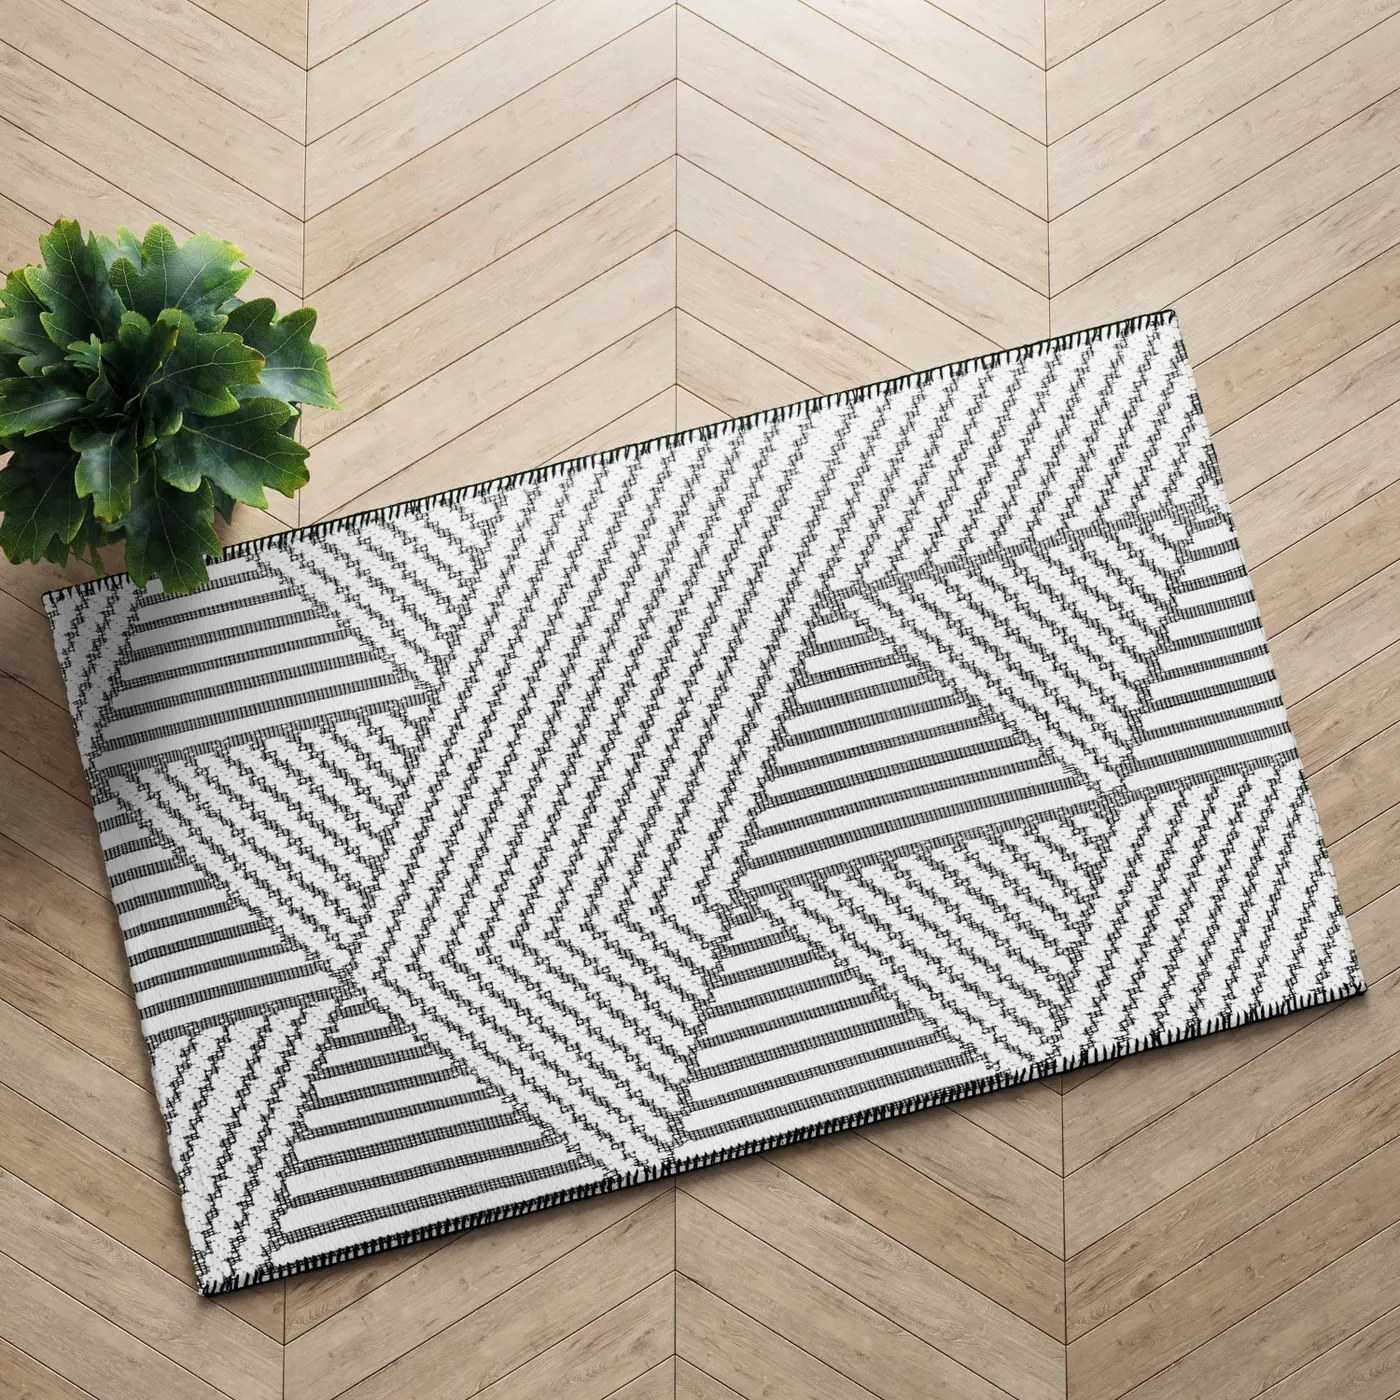 The patterned rug